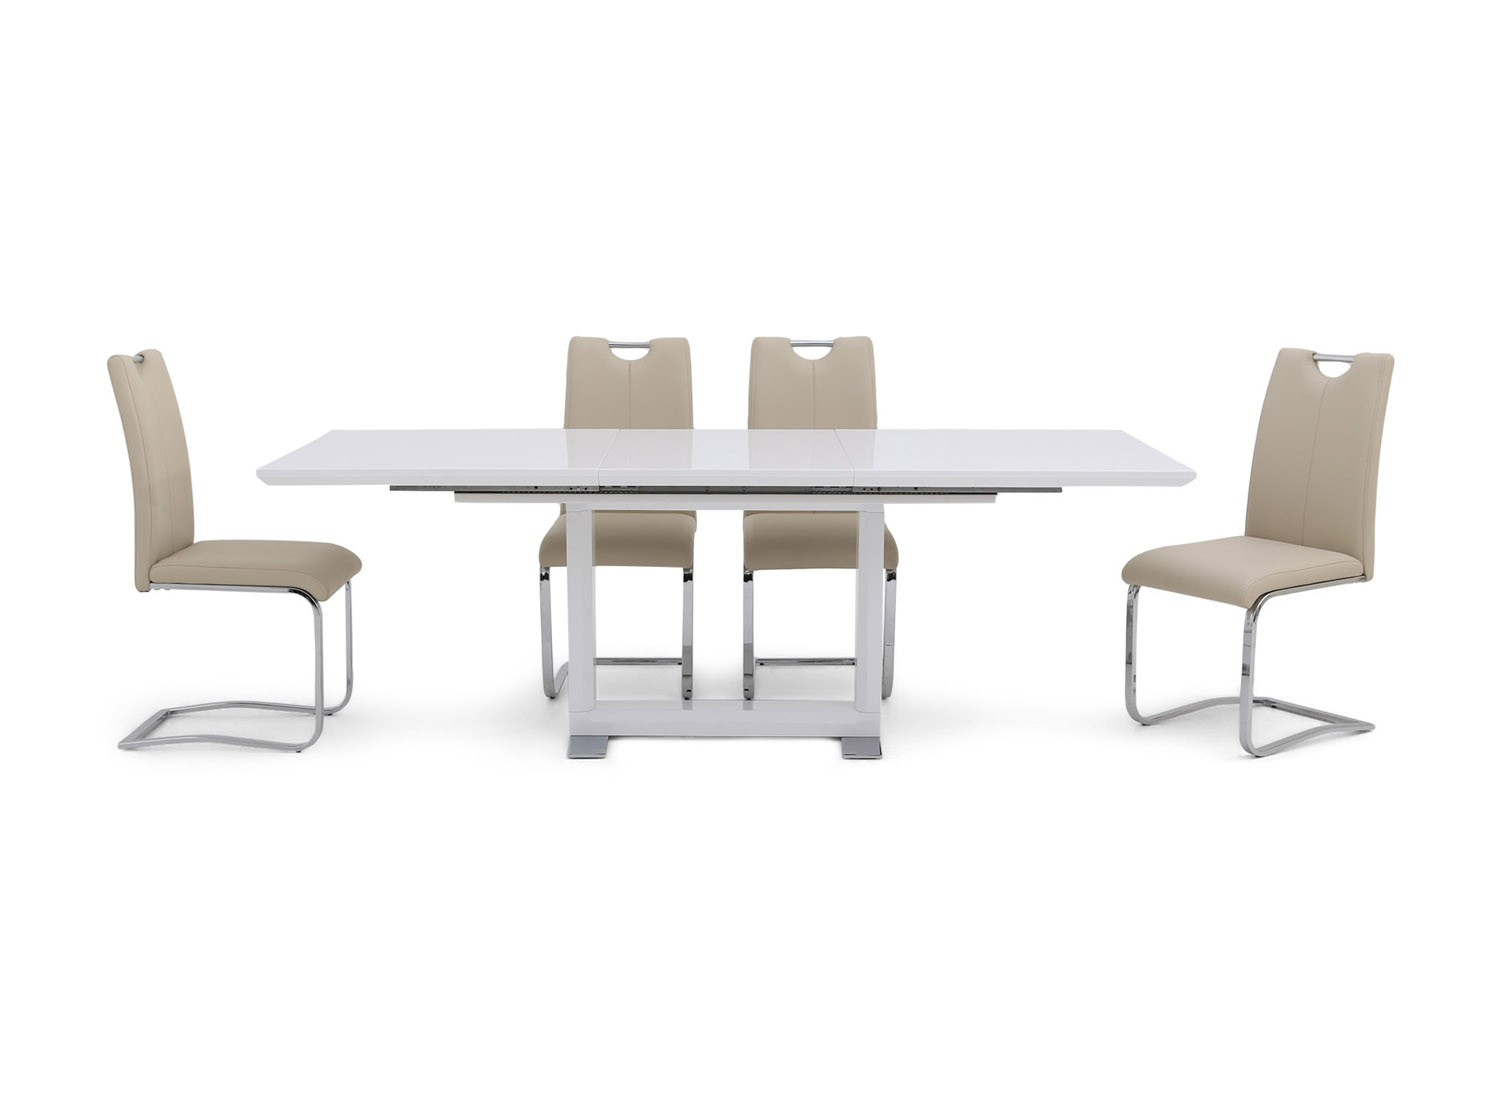 https://www.firstfurniture.co.uk/pub/media/catalog/product/f/a/fairmont_giselle_ext_white_high_gloss_dining_table_6_gabi_taupe_chairs.jpg